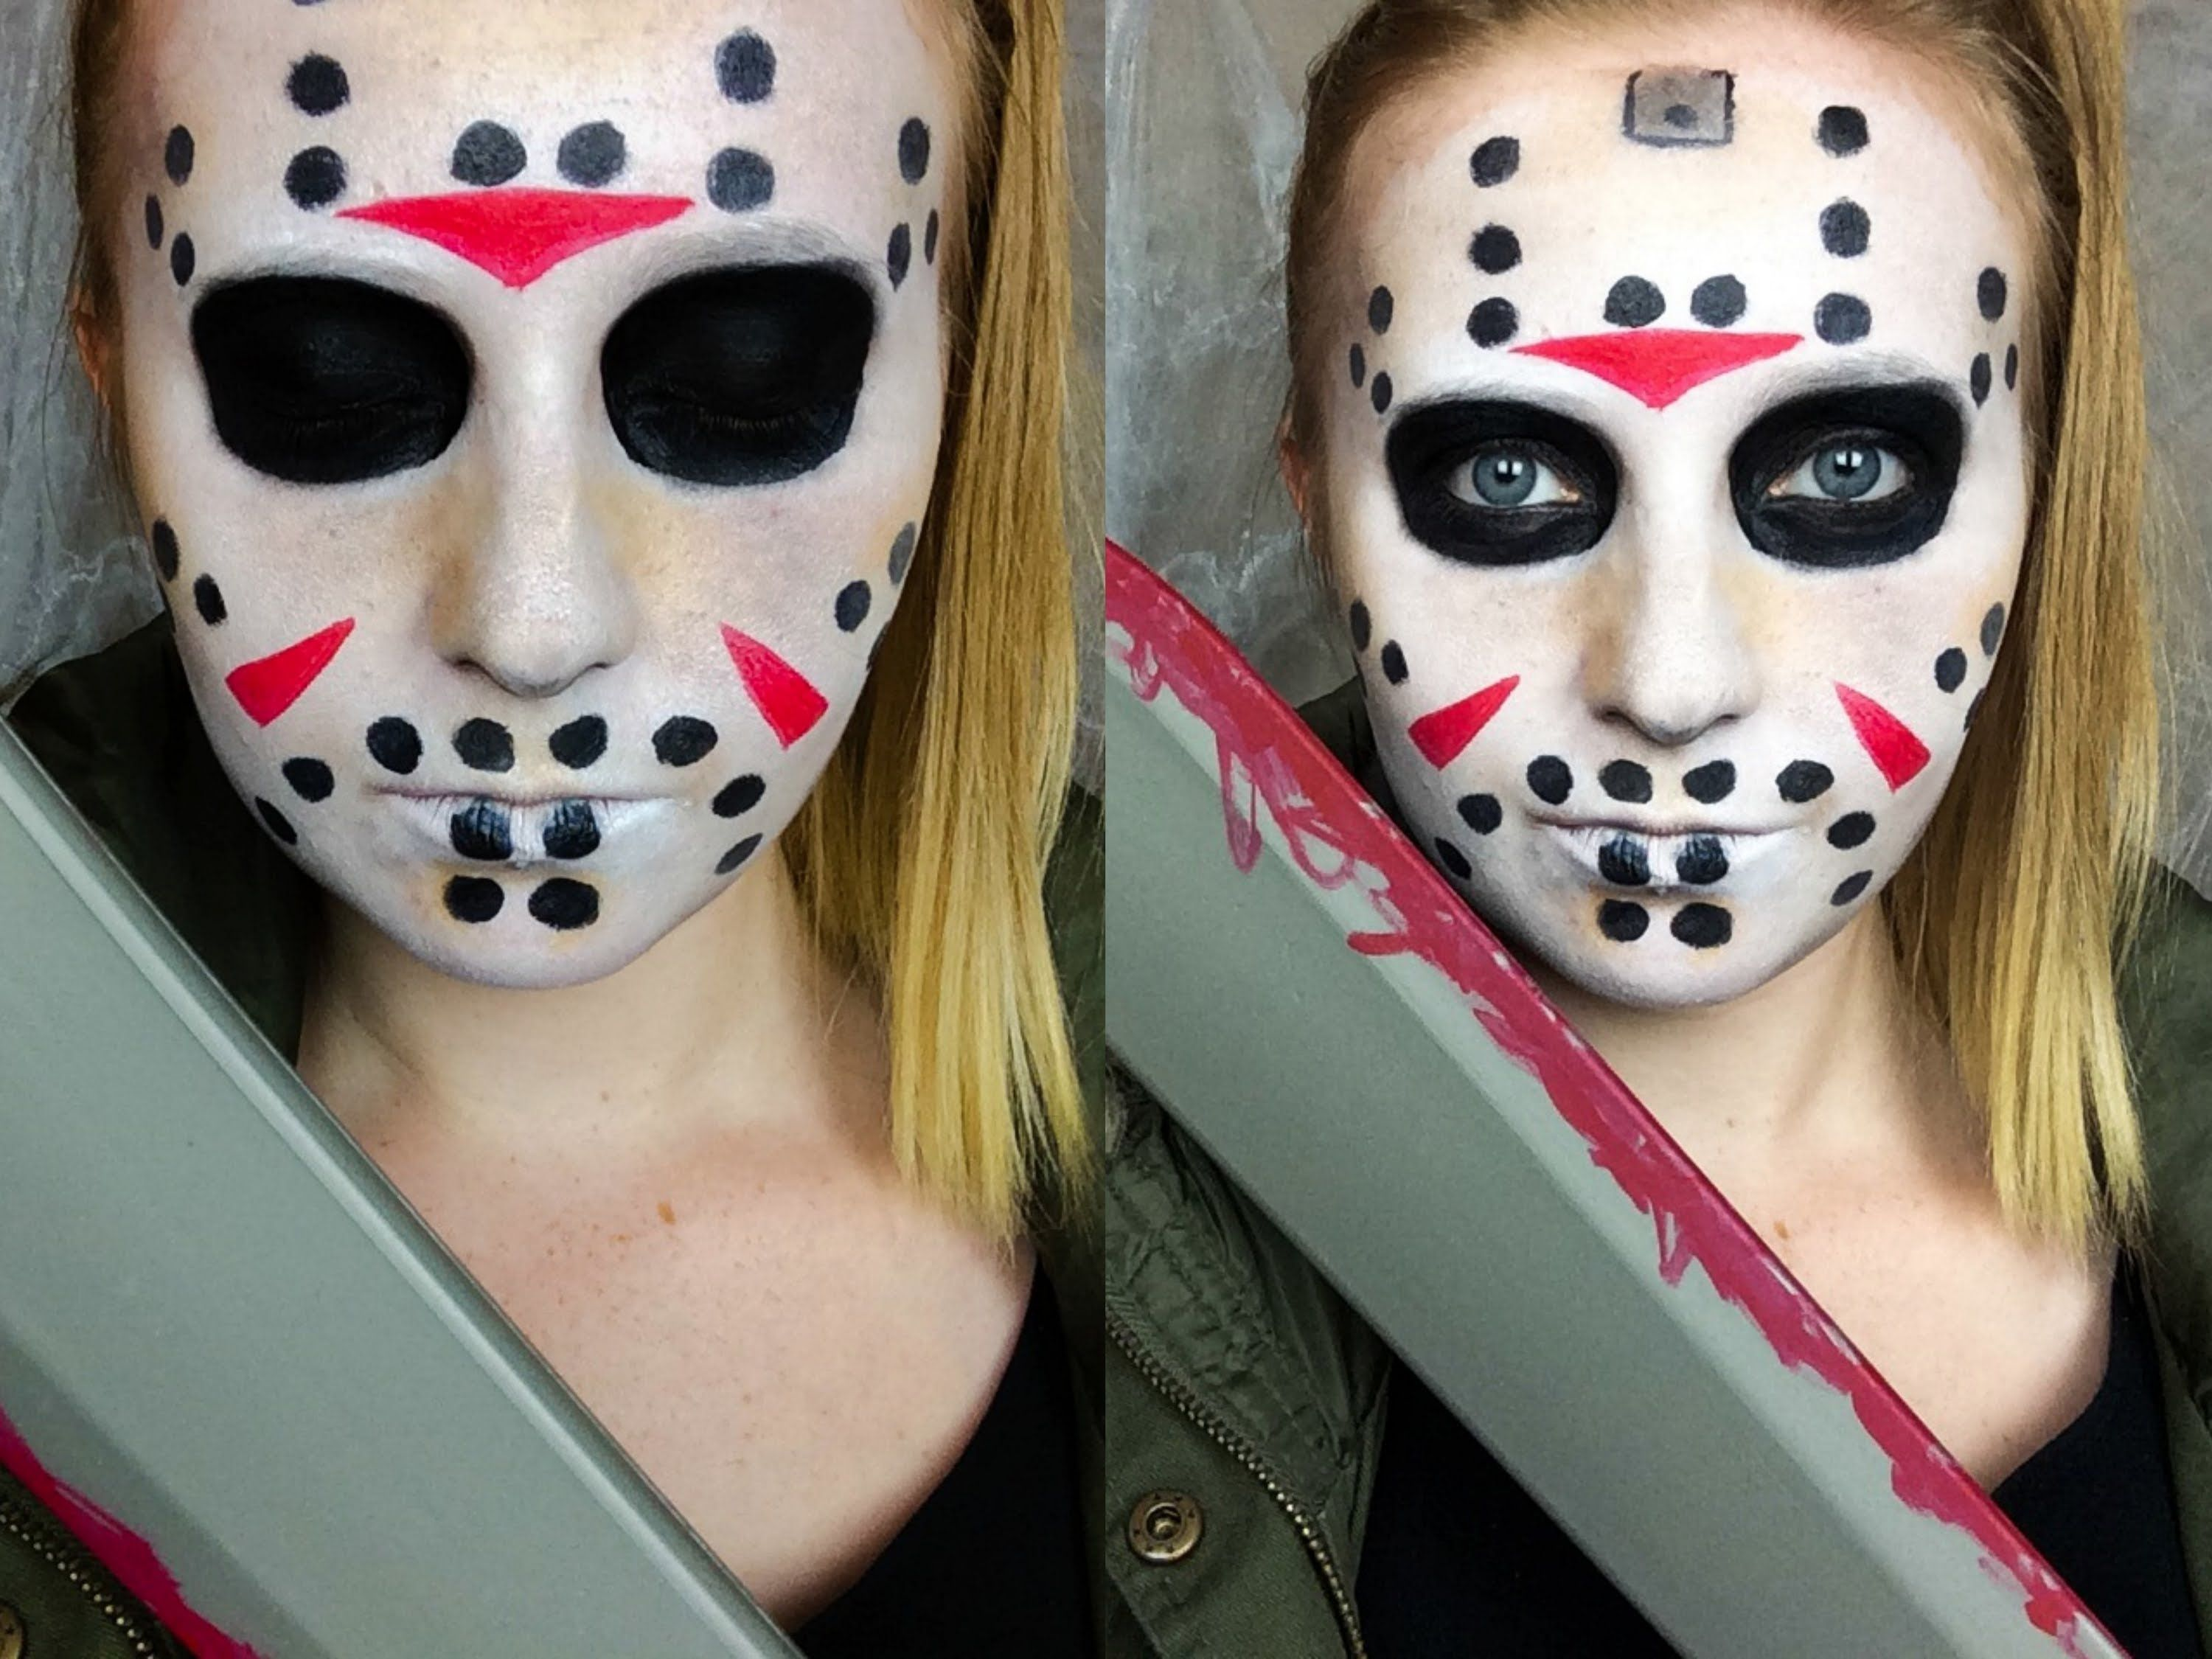 Halloween Costume Jason Friday 13th.Simple Jason Voorhees Friday The 13th Makeup Tutorial Costume In